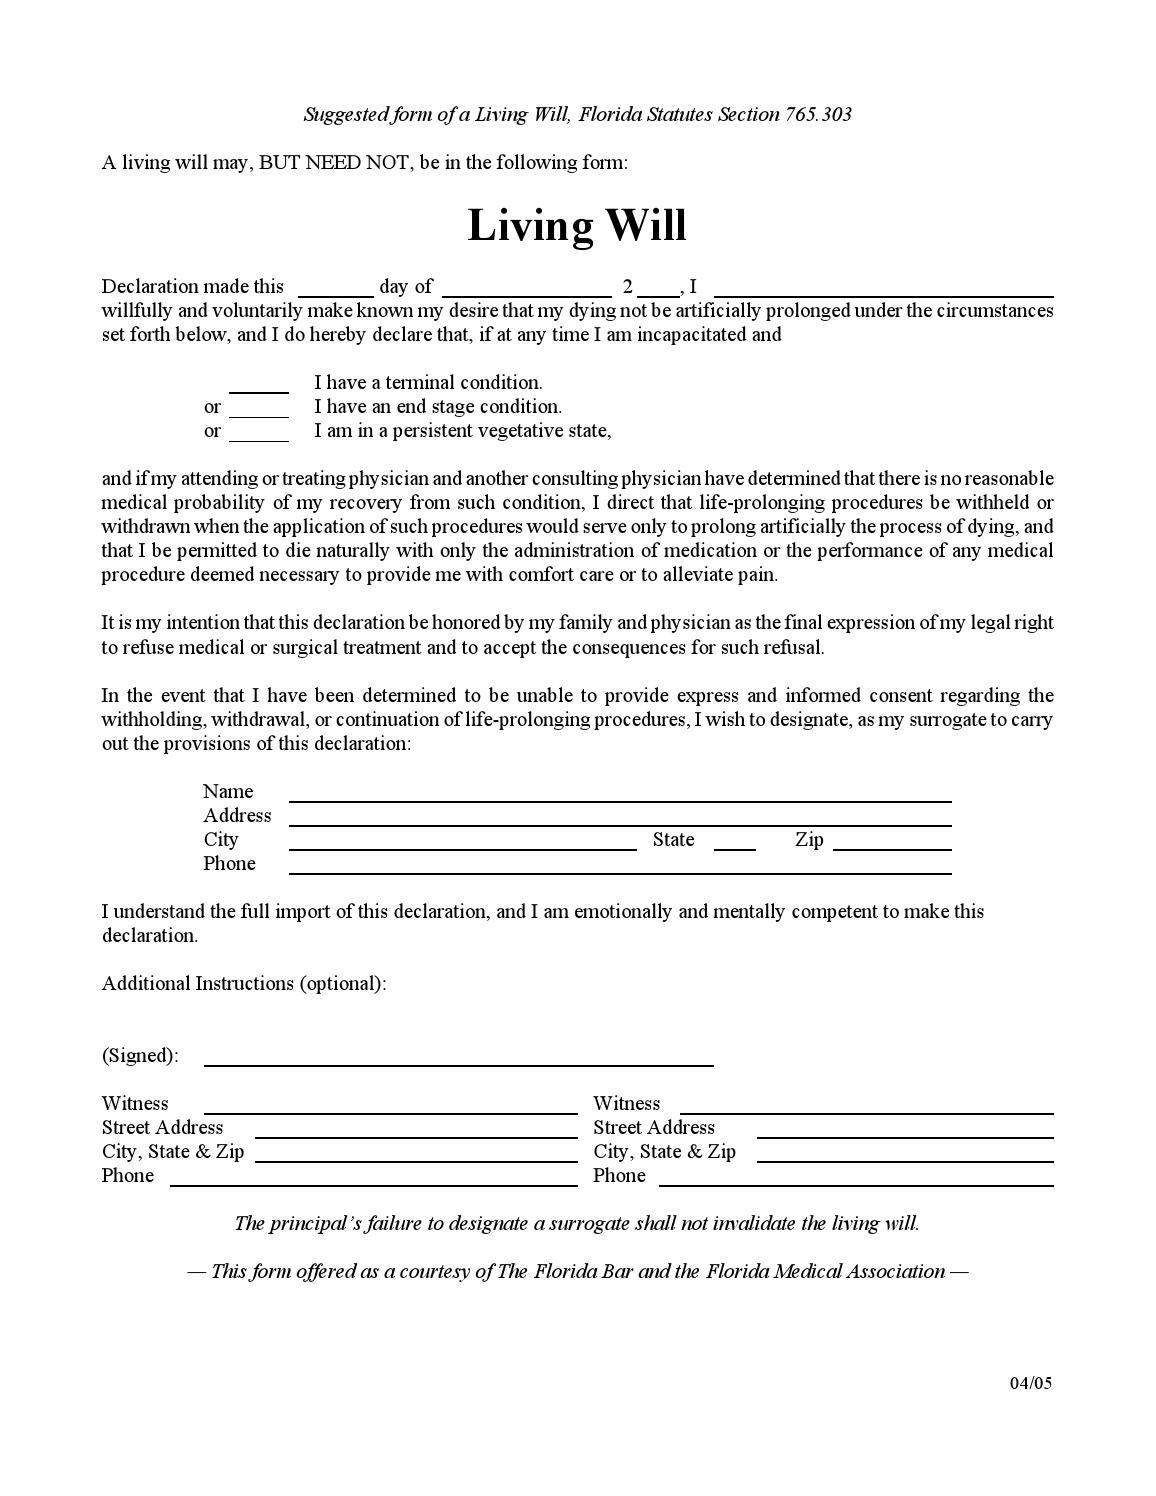 templates for wills free - florida living will by wfla newschannel8 issuu